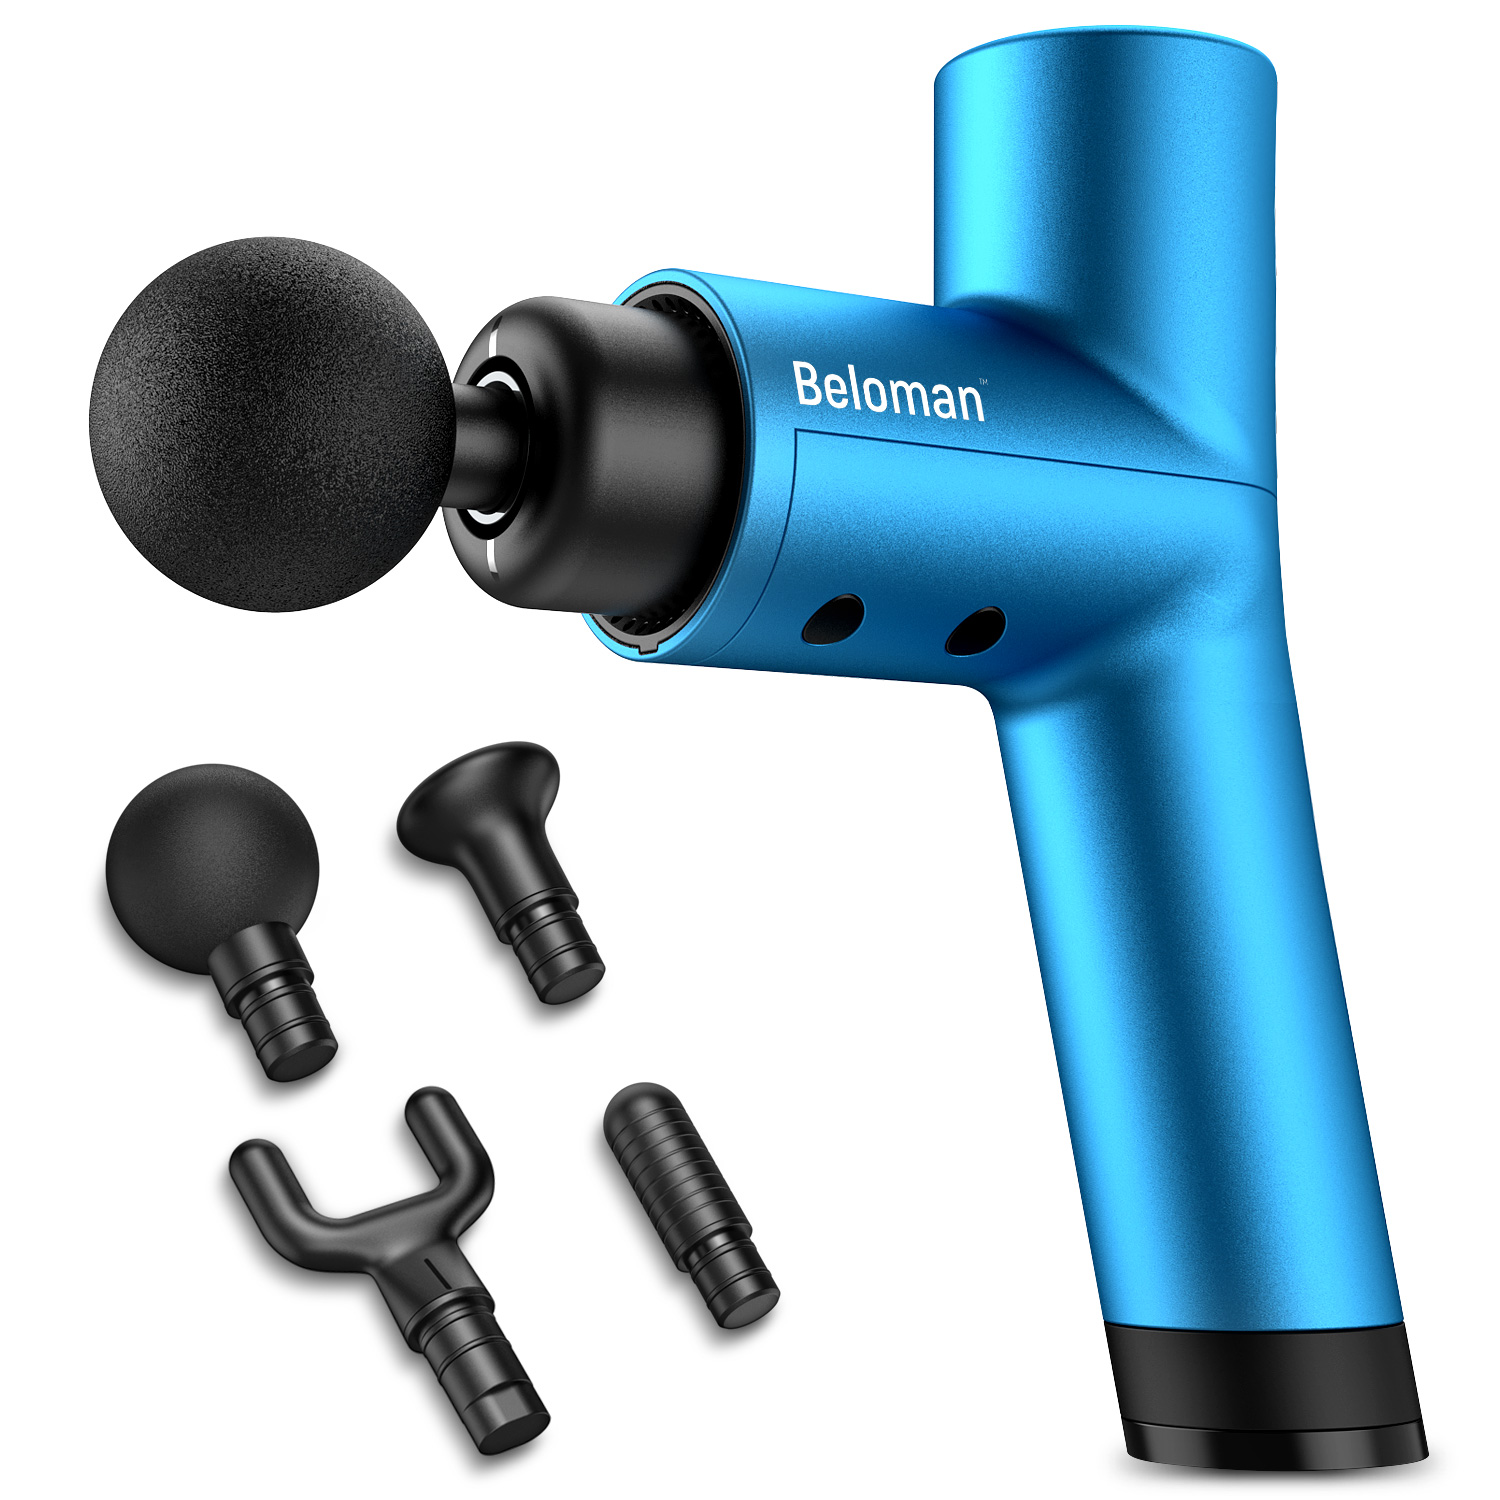 Beloman Pro Massage Gun, 3800RPMS Powerful Percussion Massage gun for Athlete Recovery- Handheld Ultra Quiet 4 Speeds Deep Tissue Muscle Massager, 2600mAh Quick Rechargeable Device with 4 Attachments